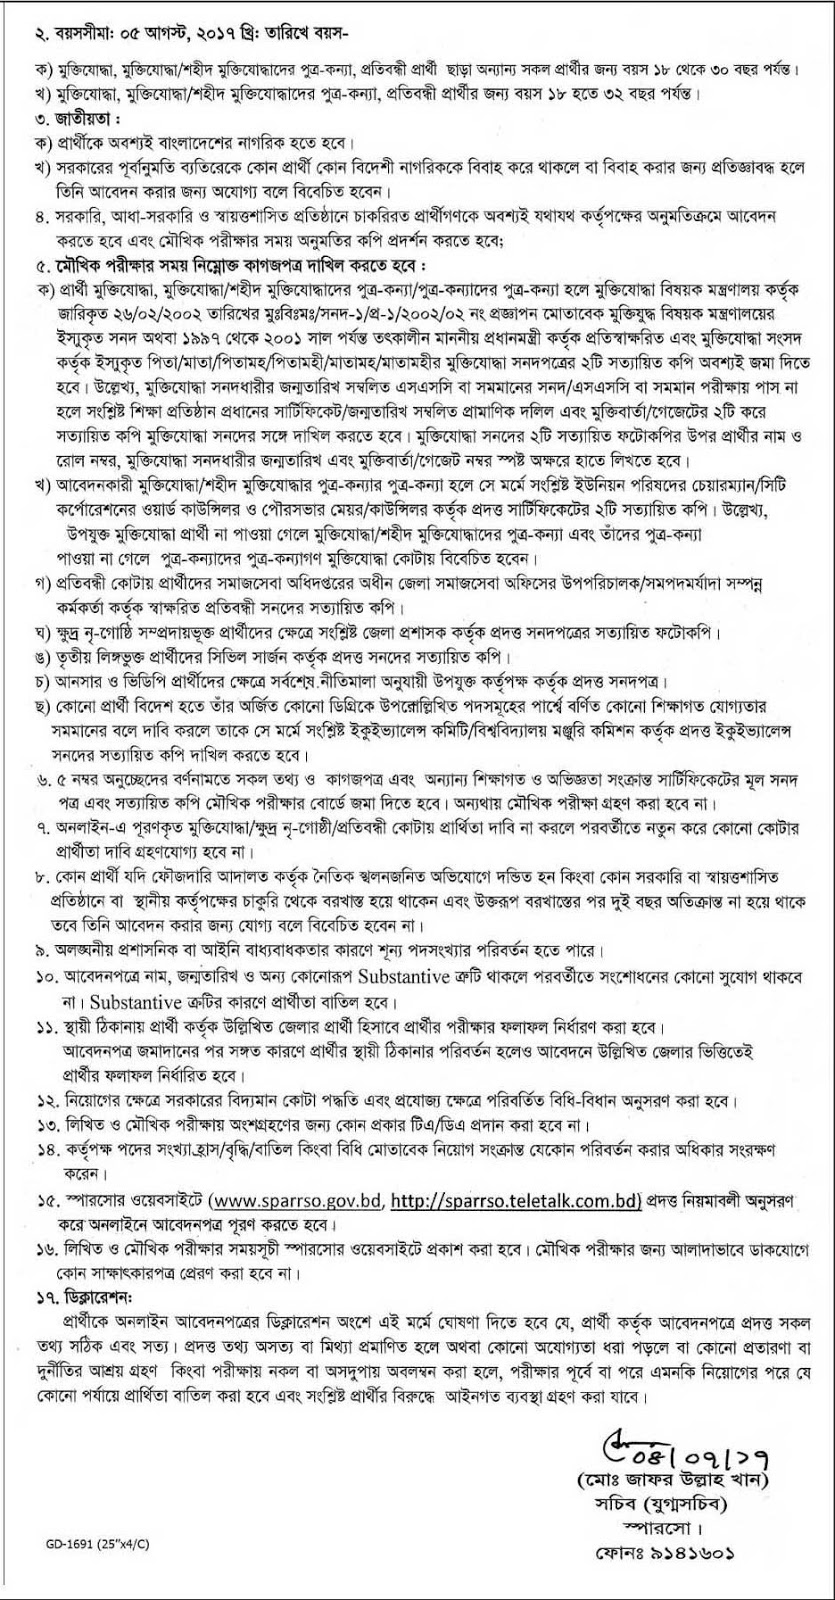 Bangladesh SPARRSO Job Circular Download